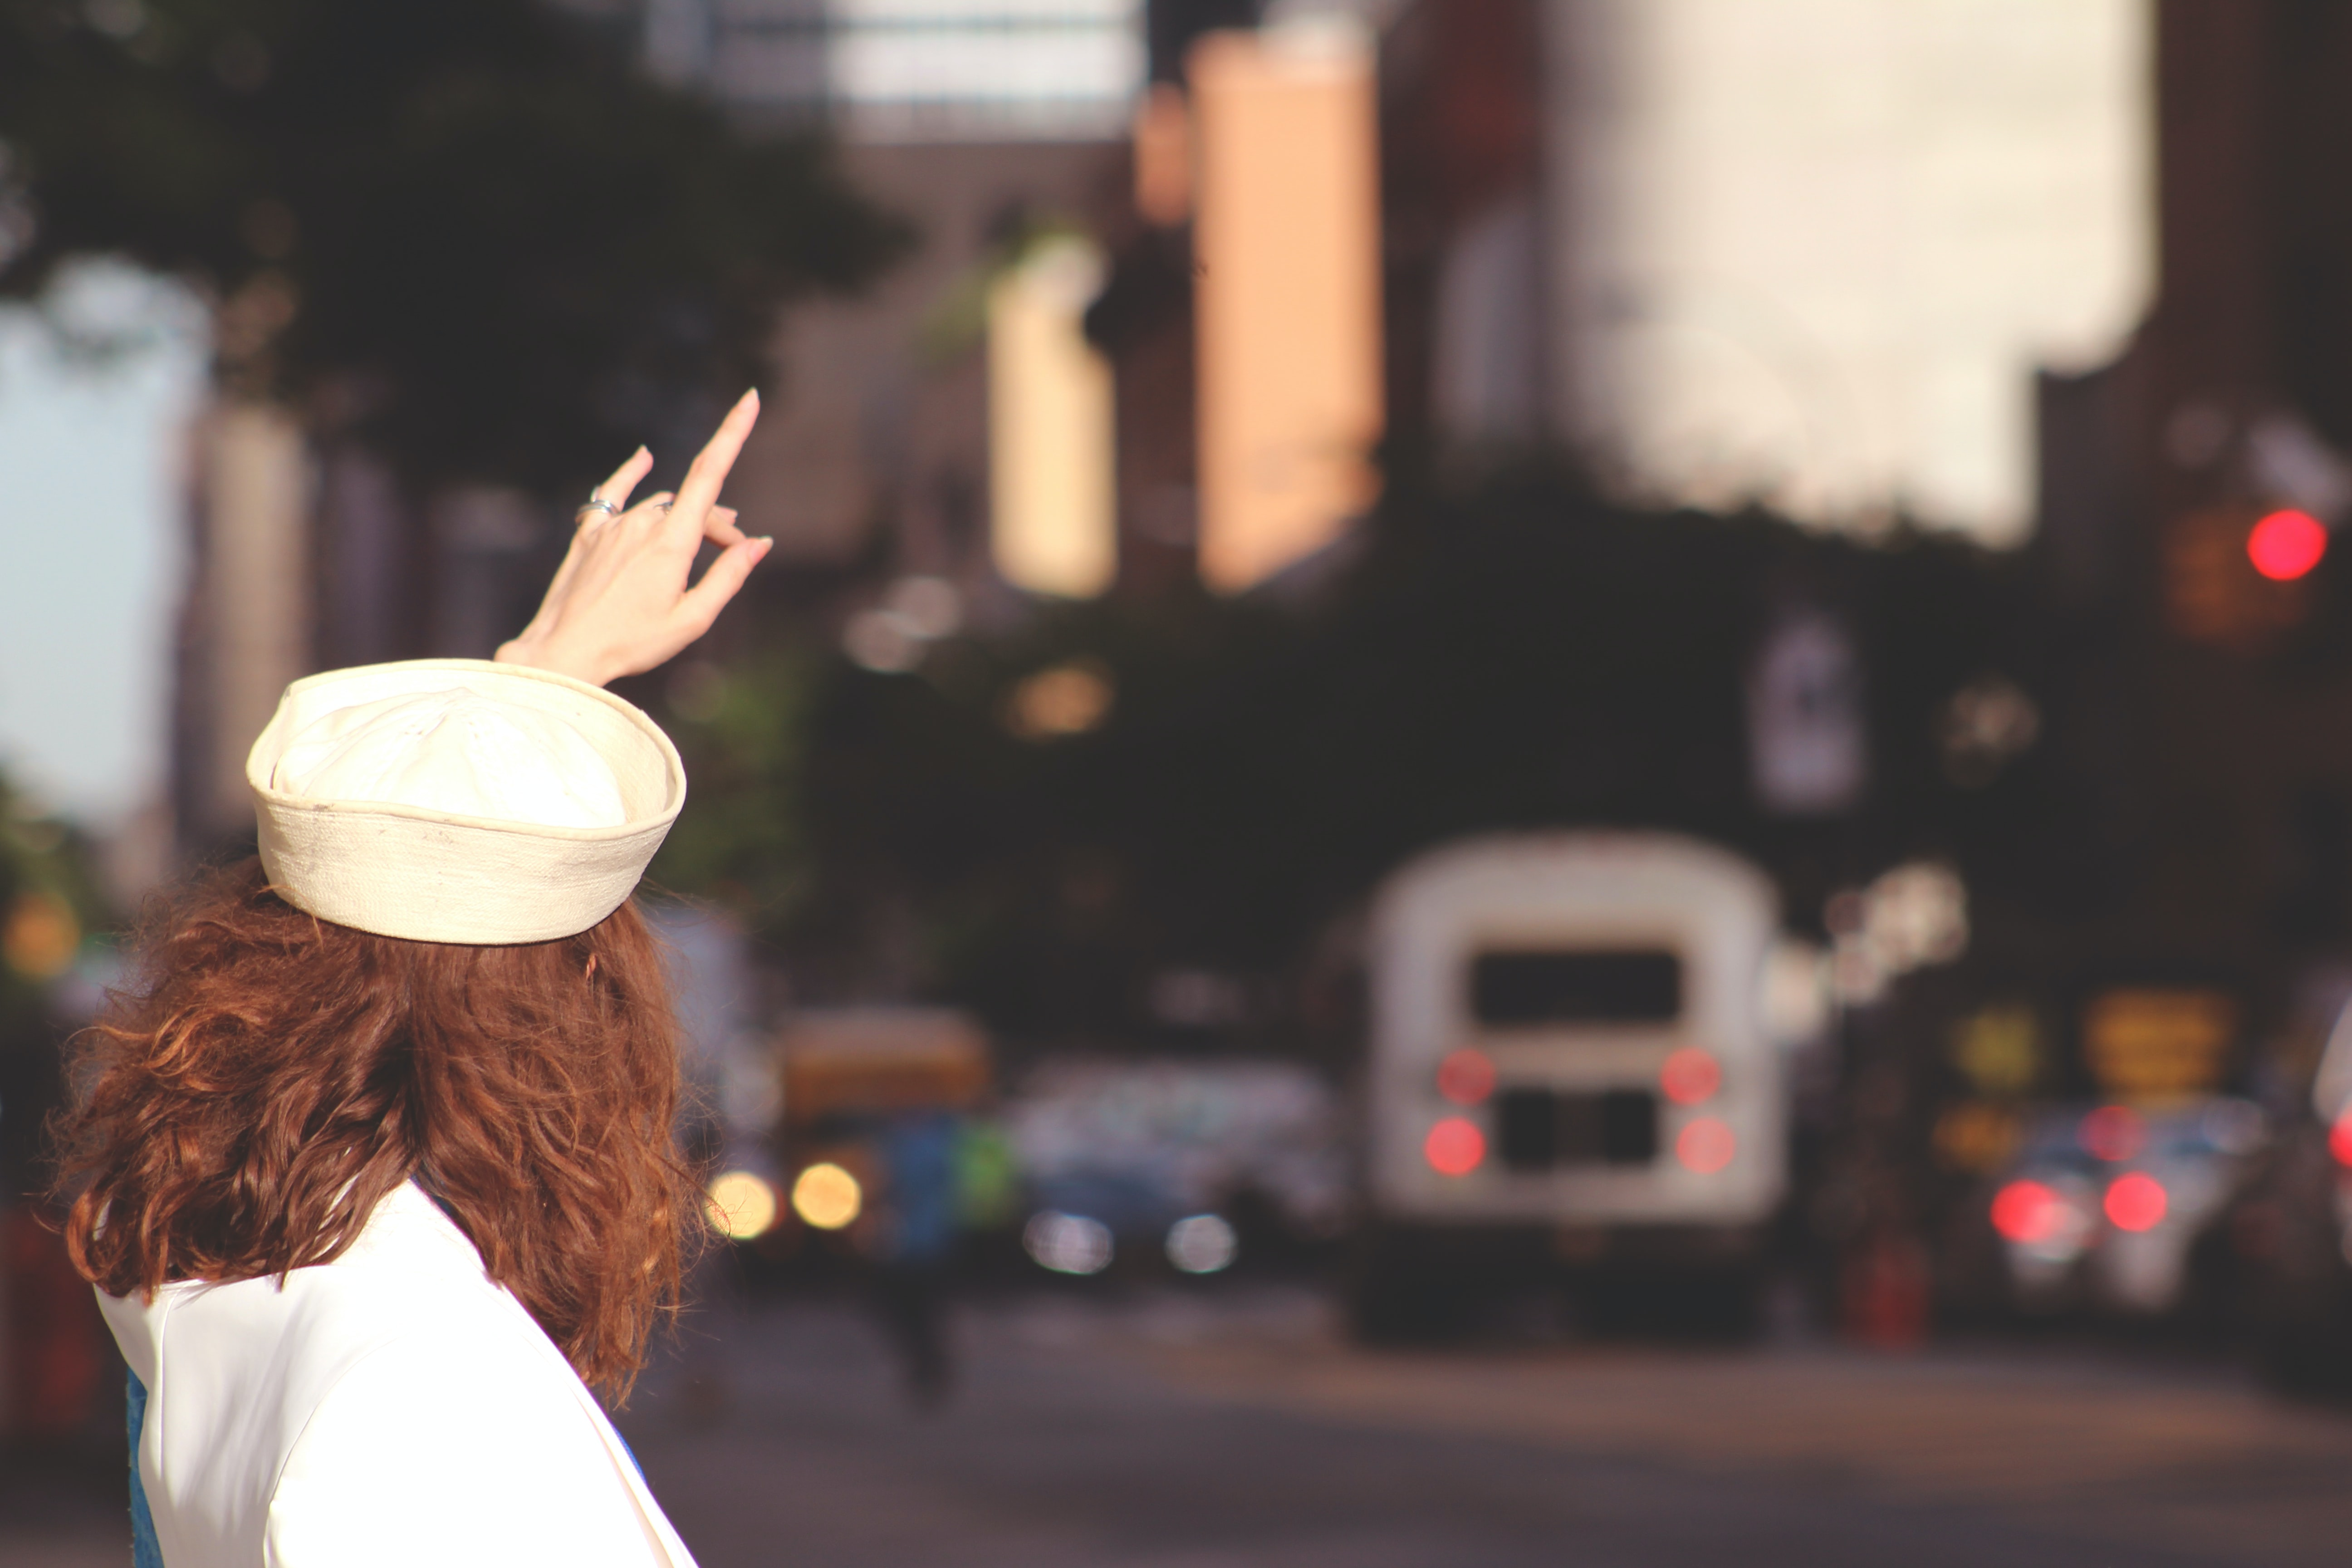 A brown-haired woman in a white hat hailing a taxi